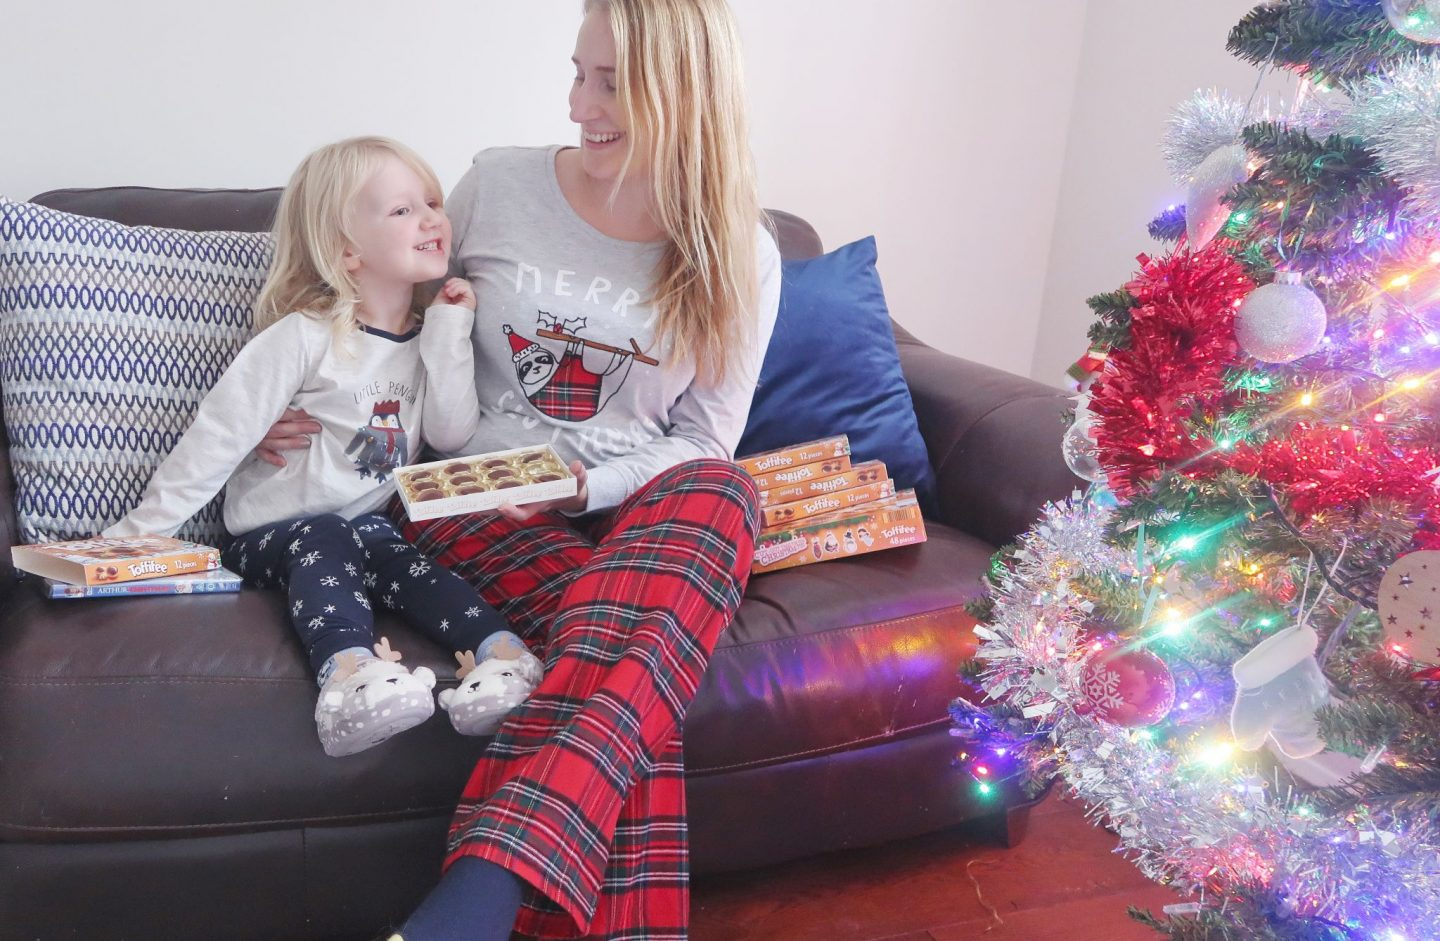 5 ways to relax with the family this Christmas